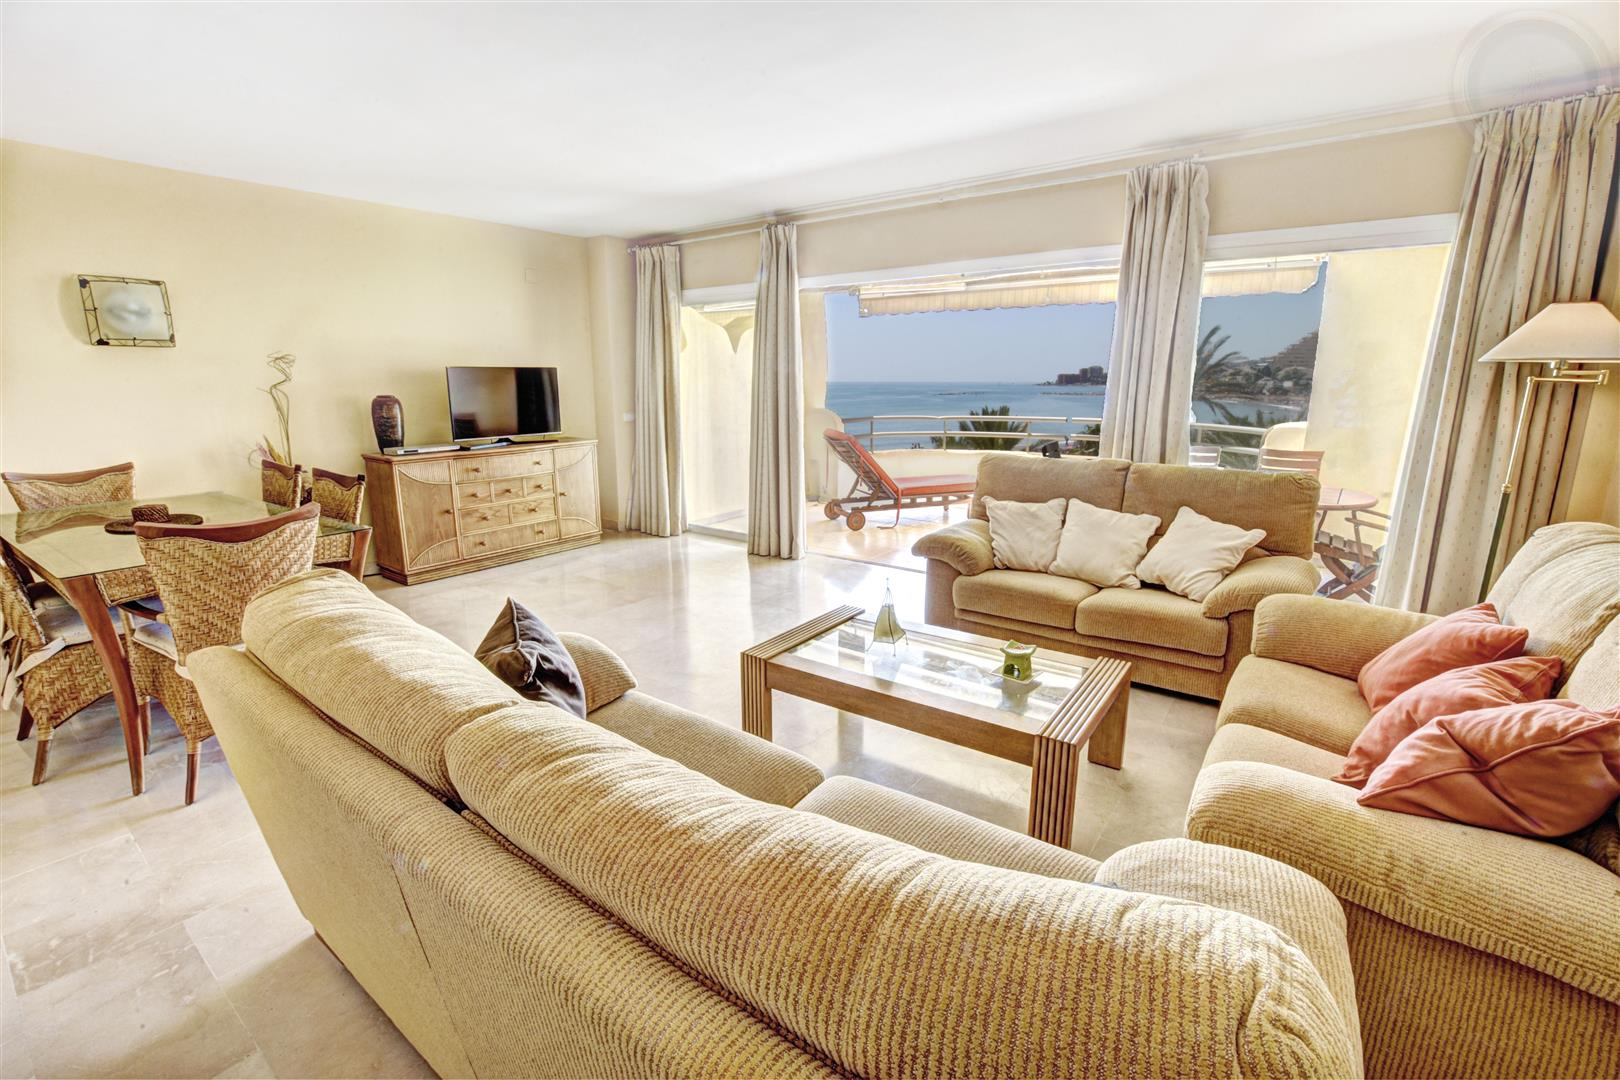 Penthouse apartment for Sale  in Benalmadena Costa Puertomarina 1